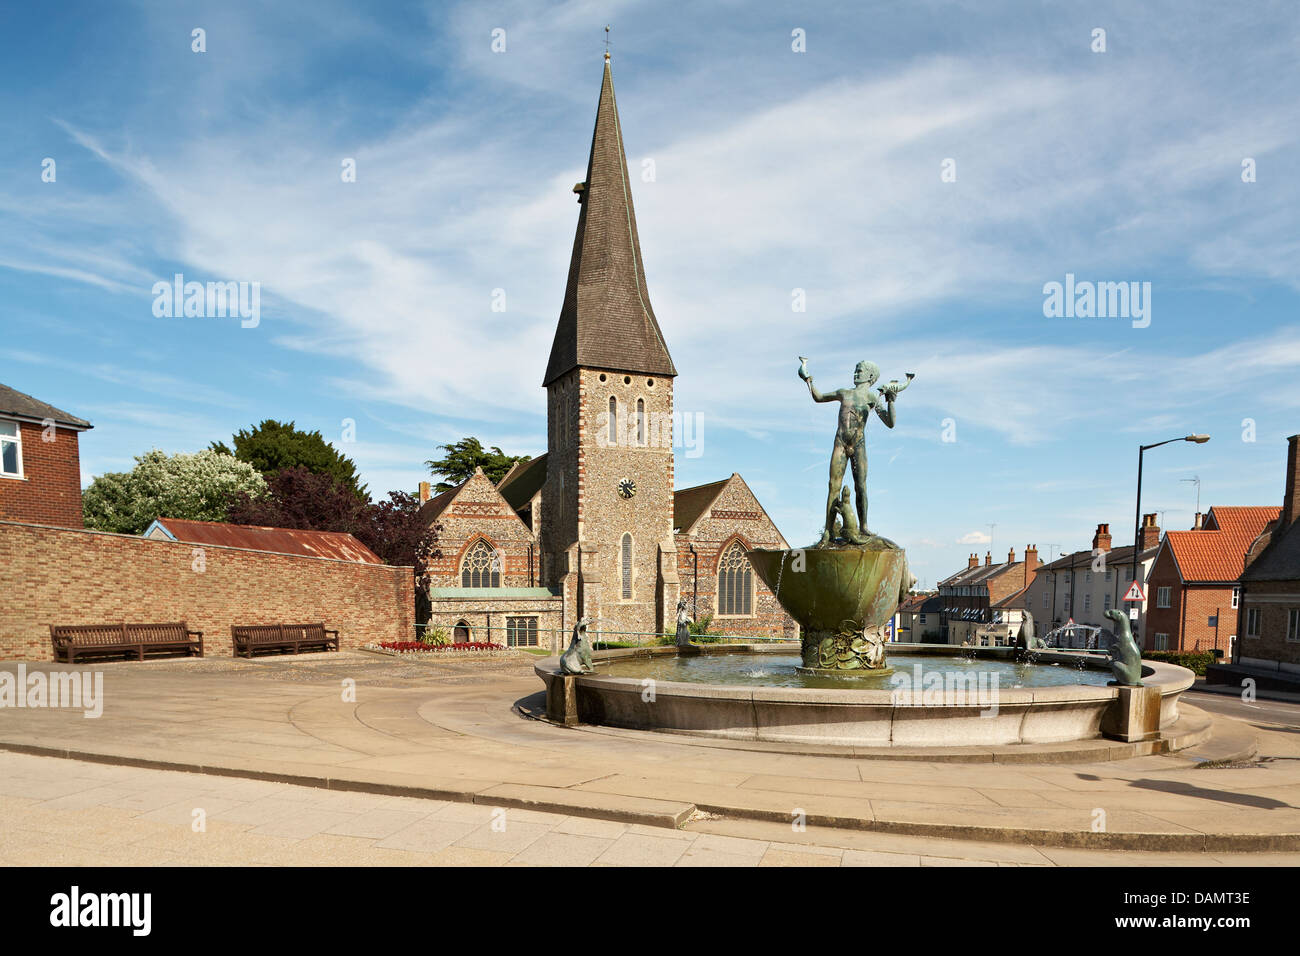 Great Britain England Essex Braintree St Michaels Church with Bronze Statue of Young Boy holding Dolphins with Sea - Stock Image